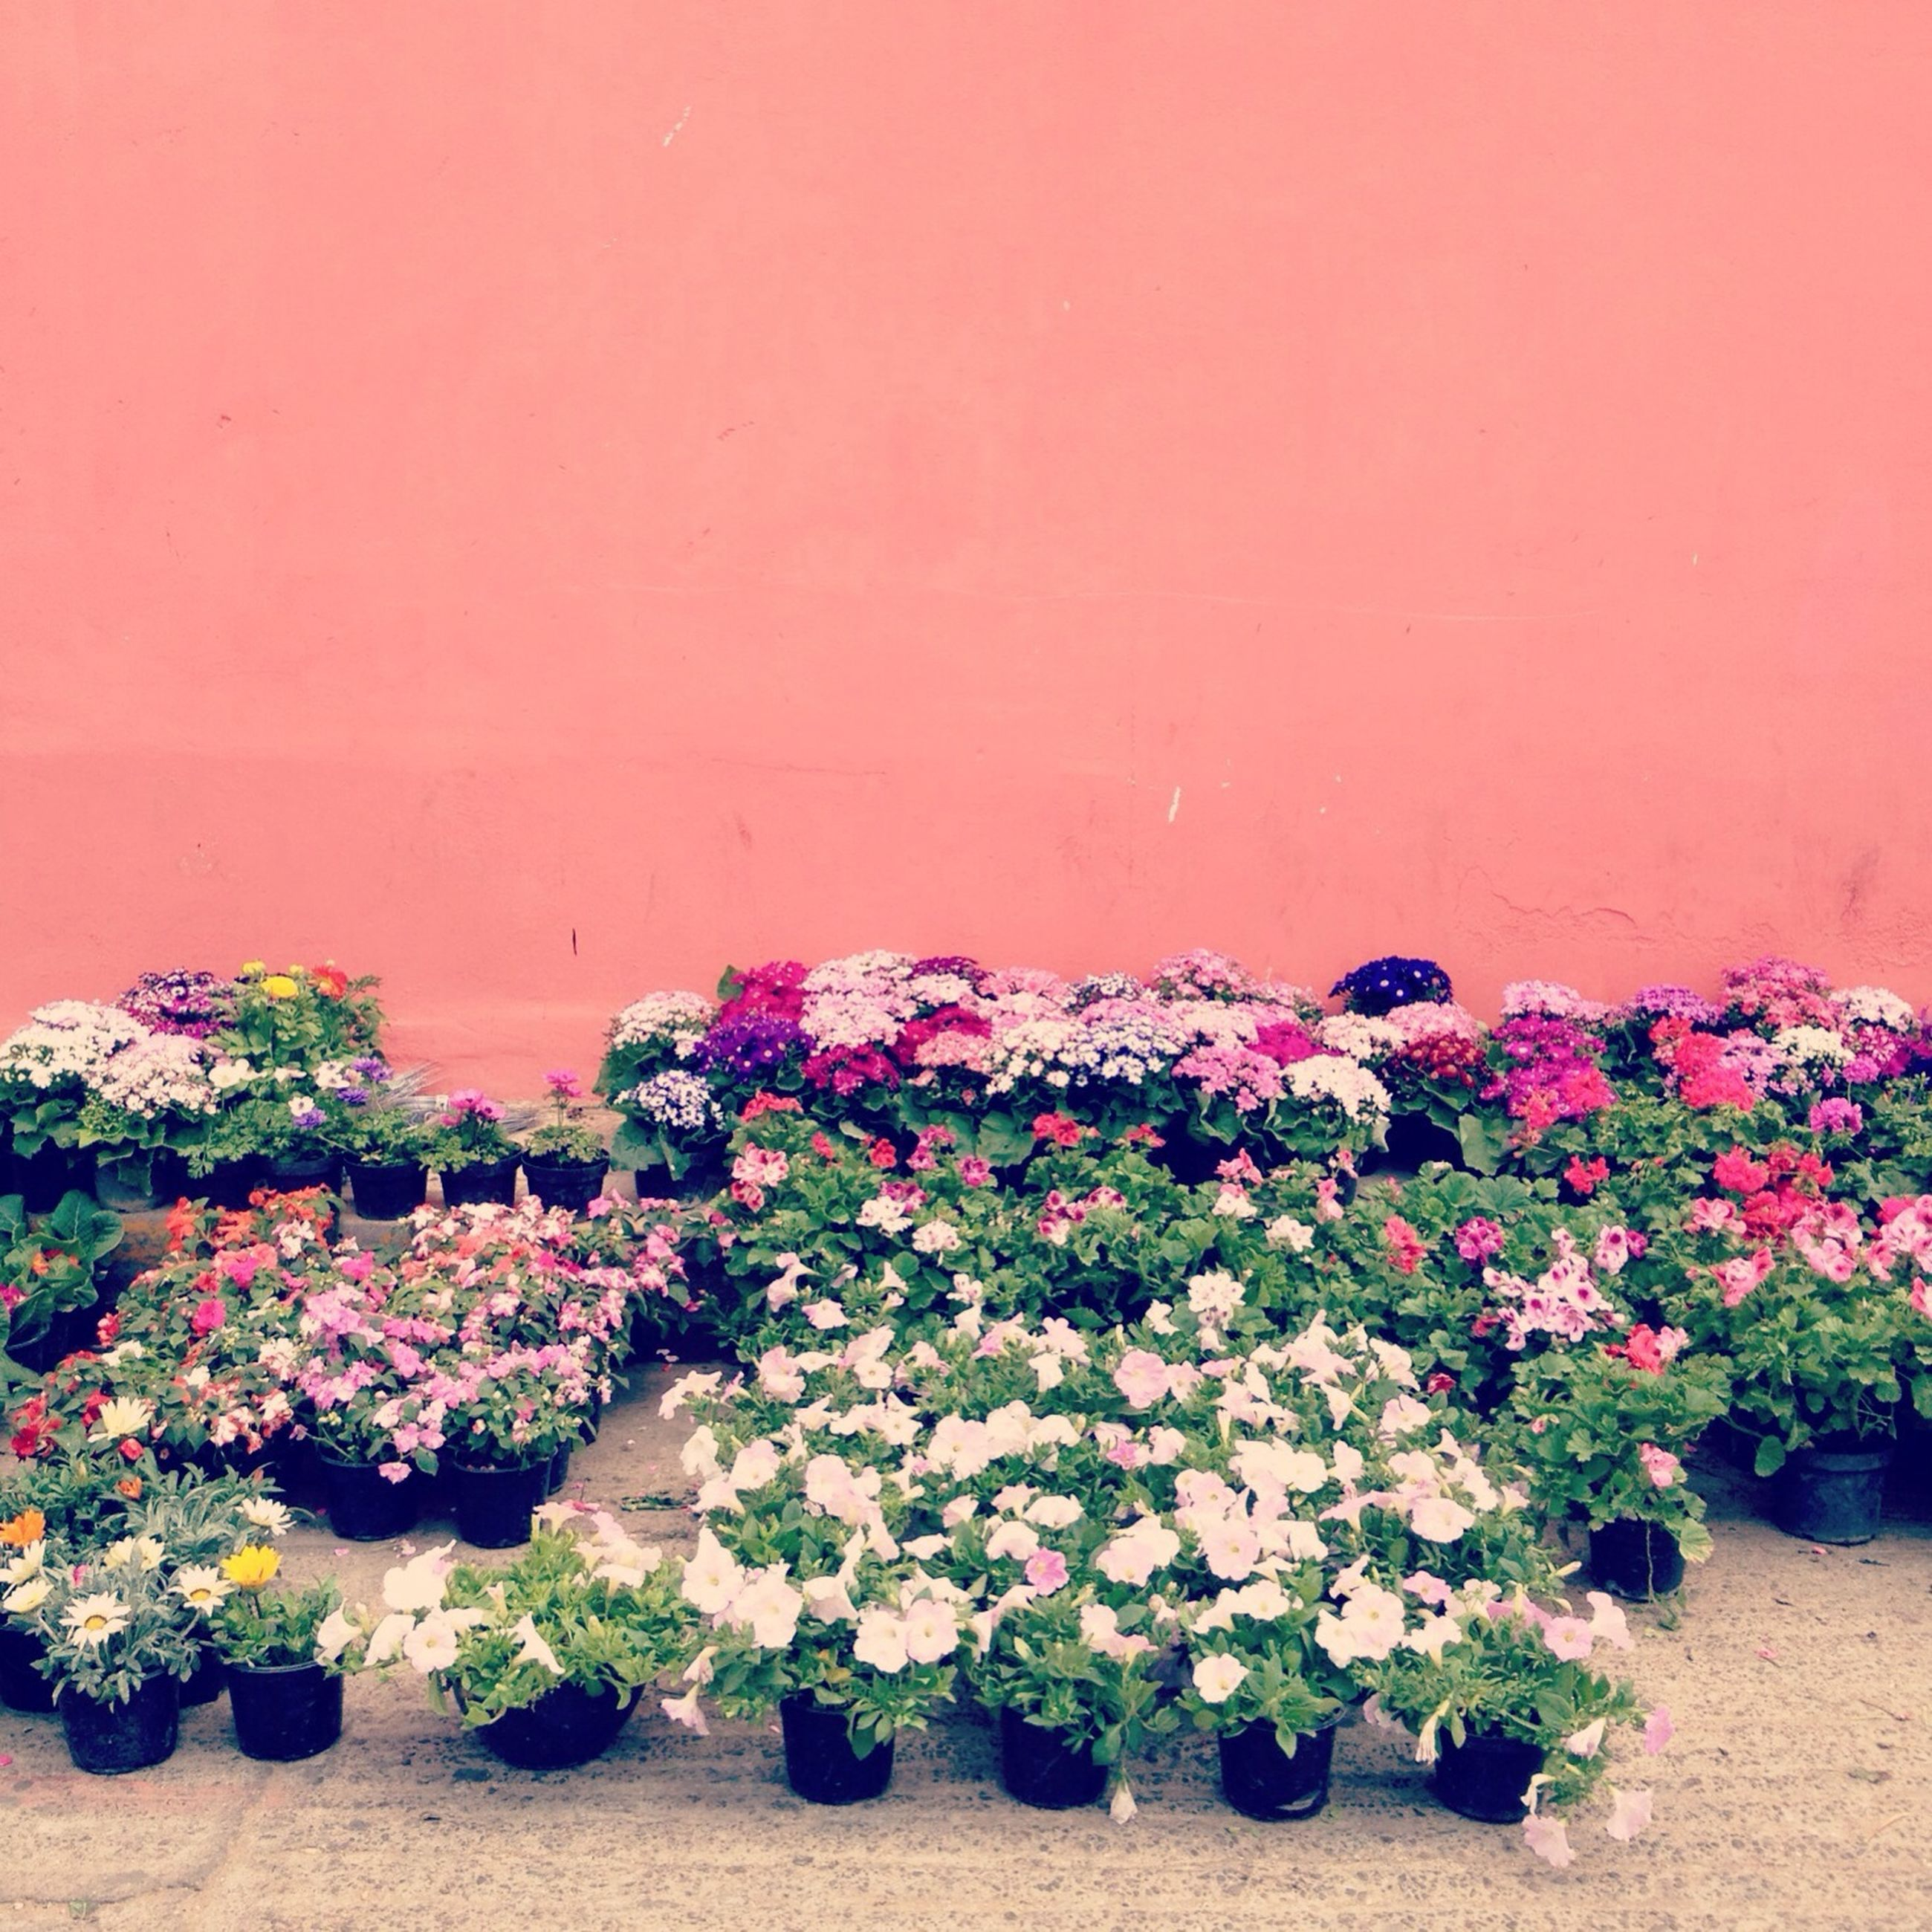 multi colored, flower, wall - building feature, variation, plant, copy space, growth, abundance, decoration, arrangement, nature, wall, beach, freshness, outdoors, beauty in nature, sand, no people, colorful, large group of objects